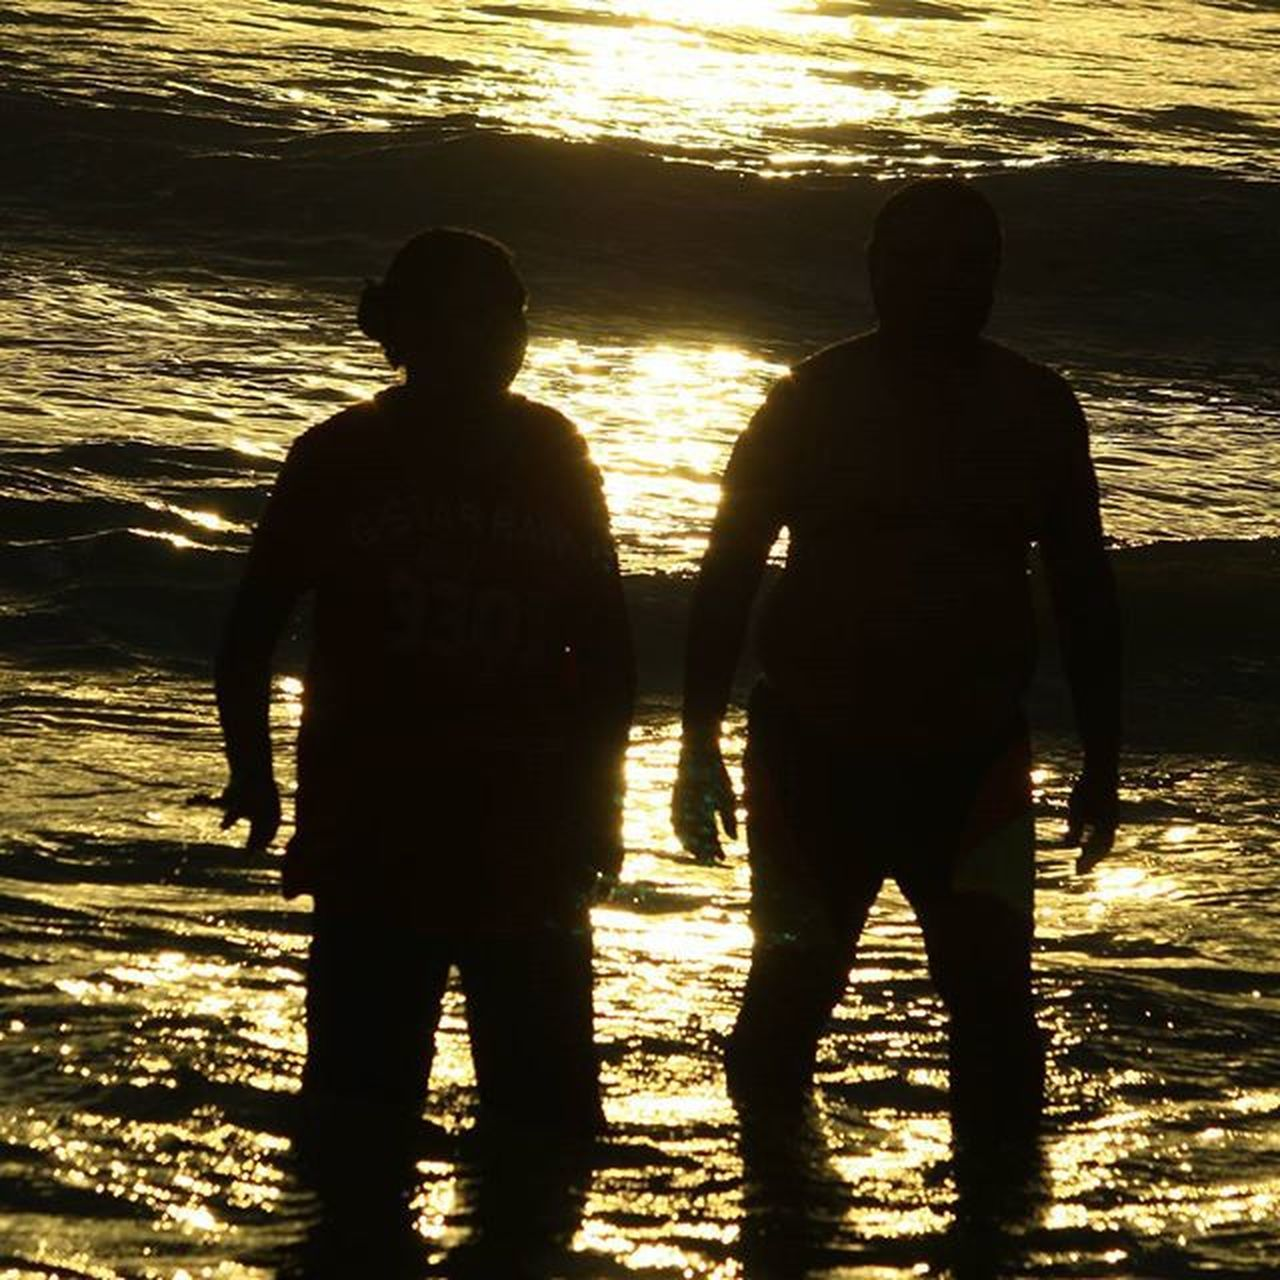 silhouette, two people, sunlight, sea, shadow, standing, sunset, togetherness, nature, men, beach, water, real people, outdoors, full length, beauty in nature, only men, people, friendship, adult, adults only, day